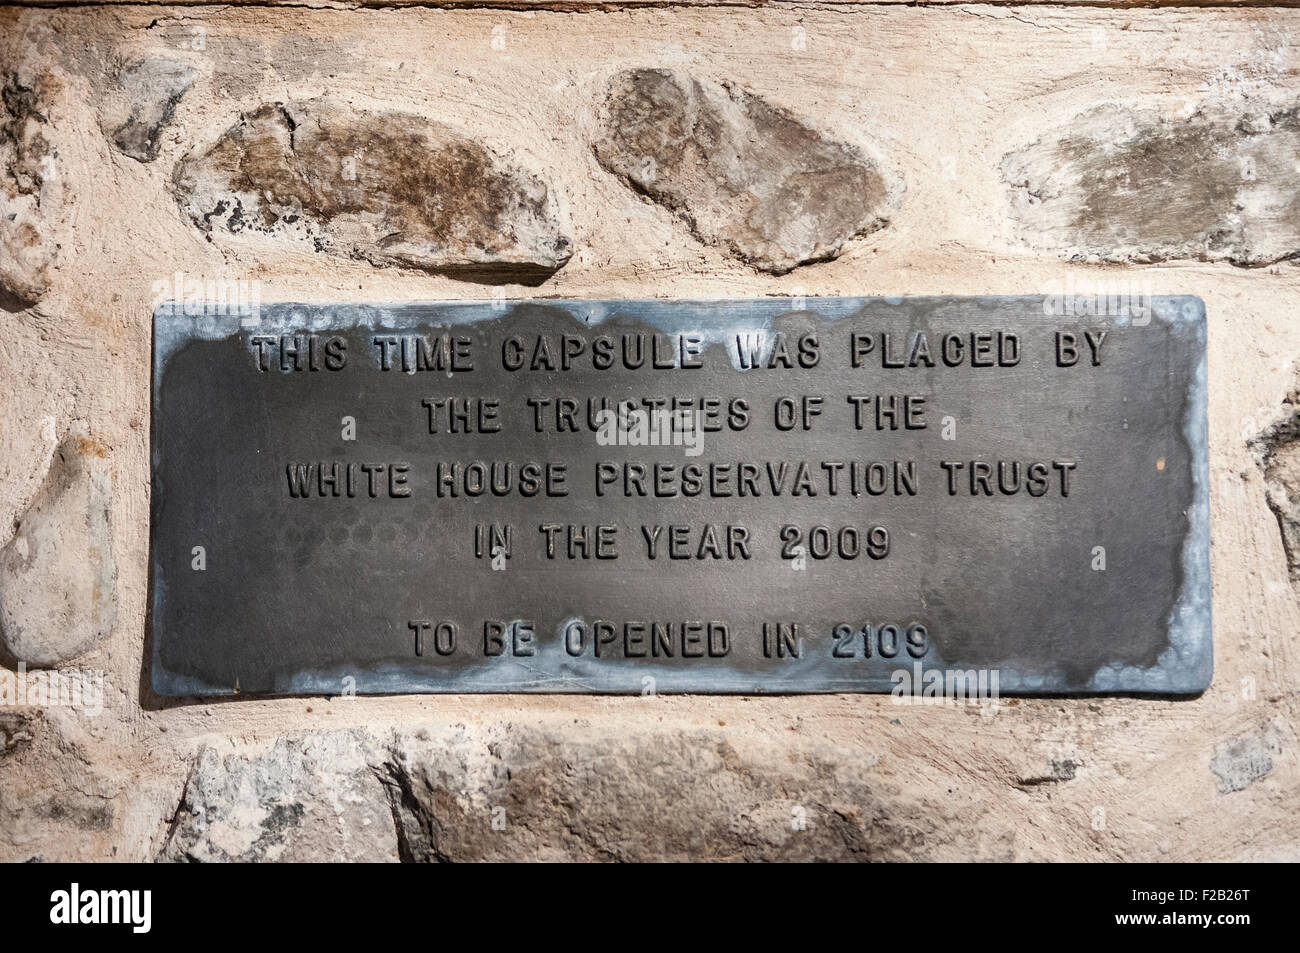 Cast iron plaque in the White House, County Antrim, advising that the time capsule behind should be opened in 2109. Stock Photo